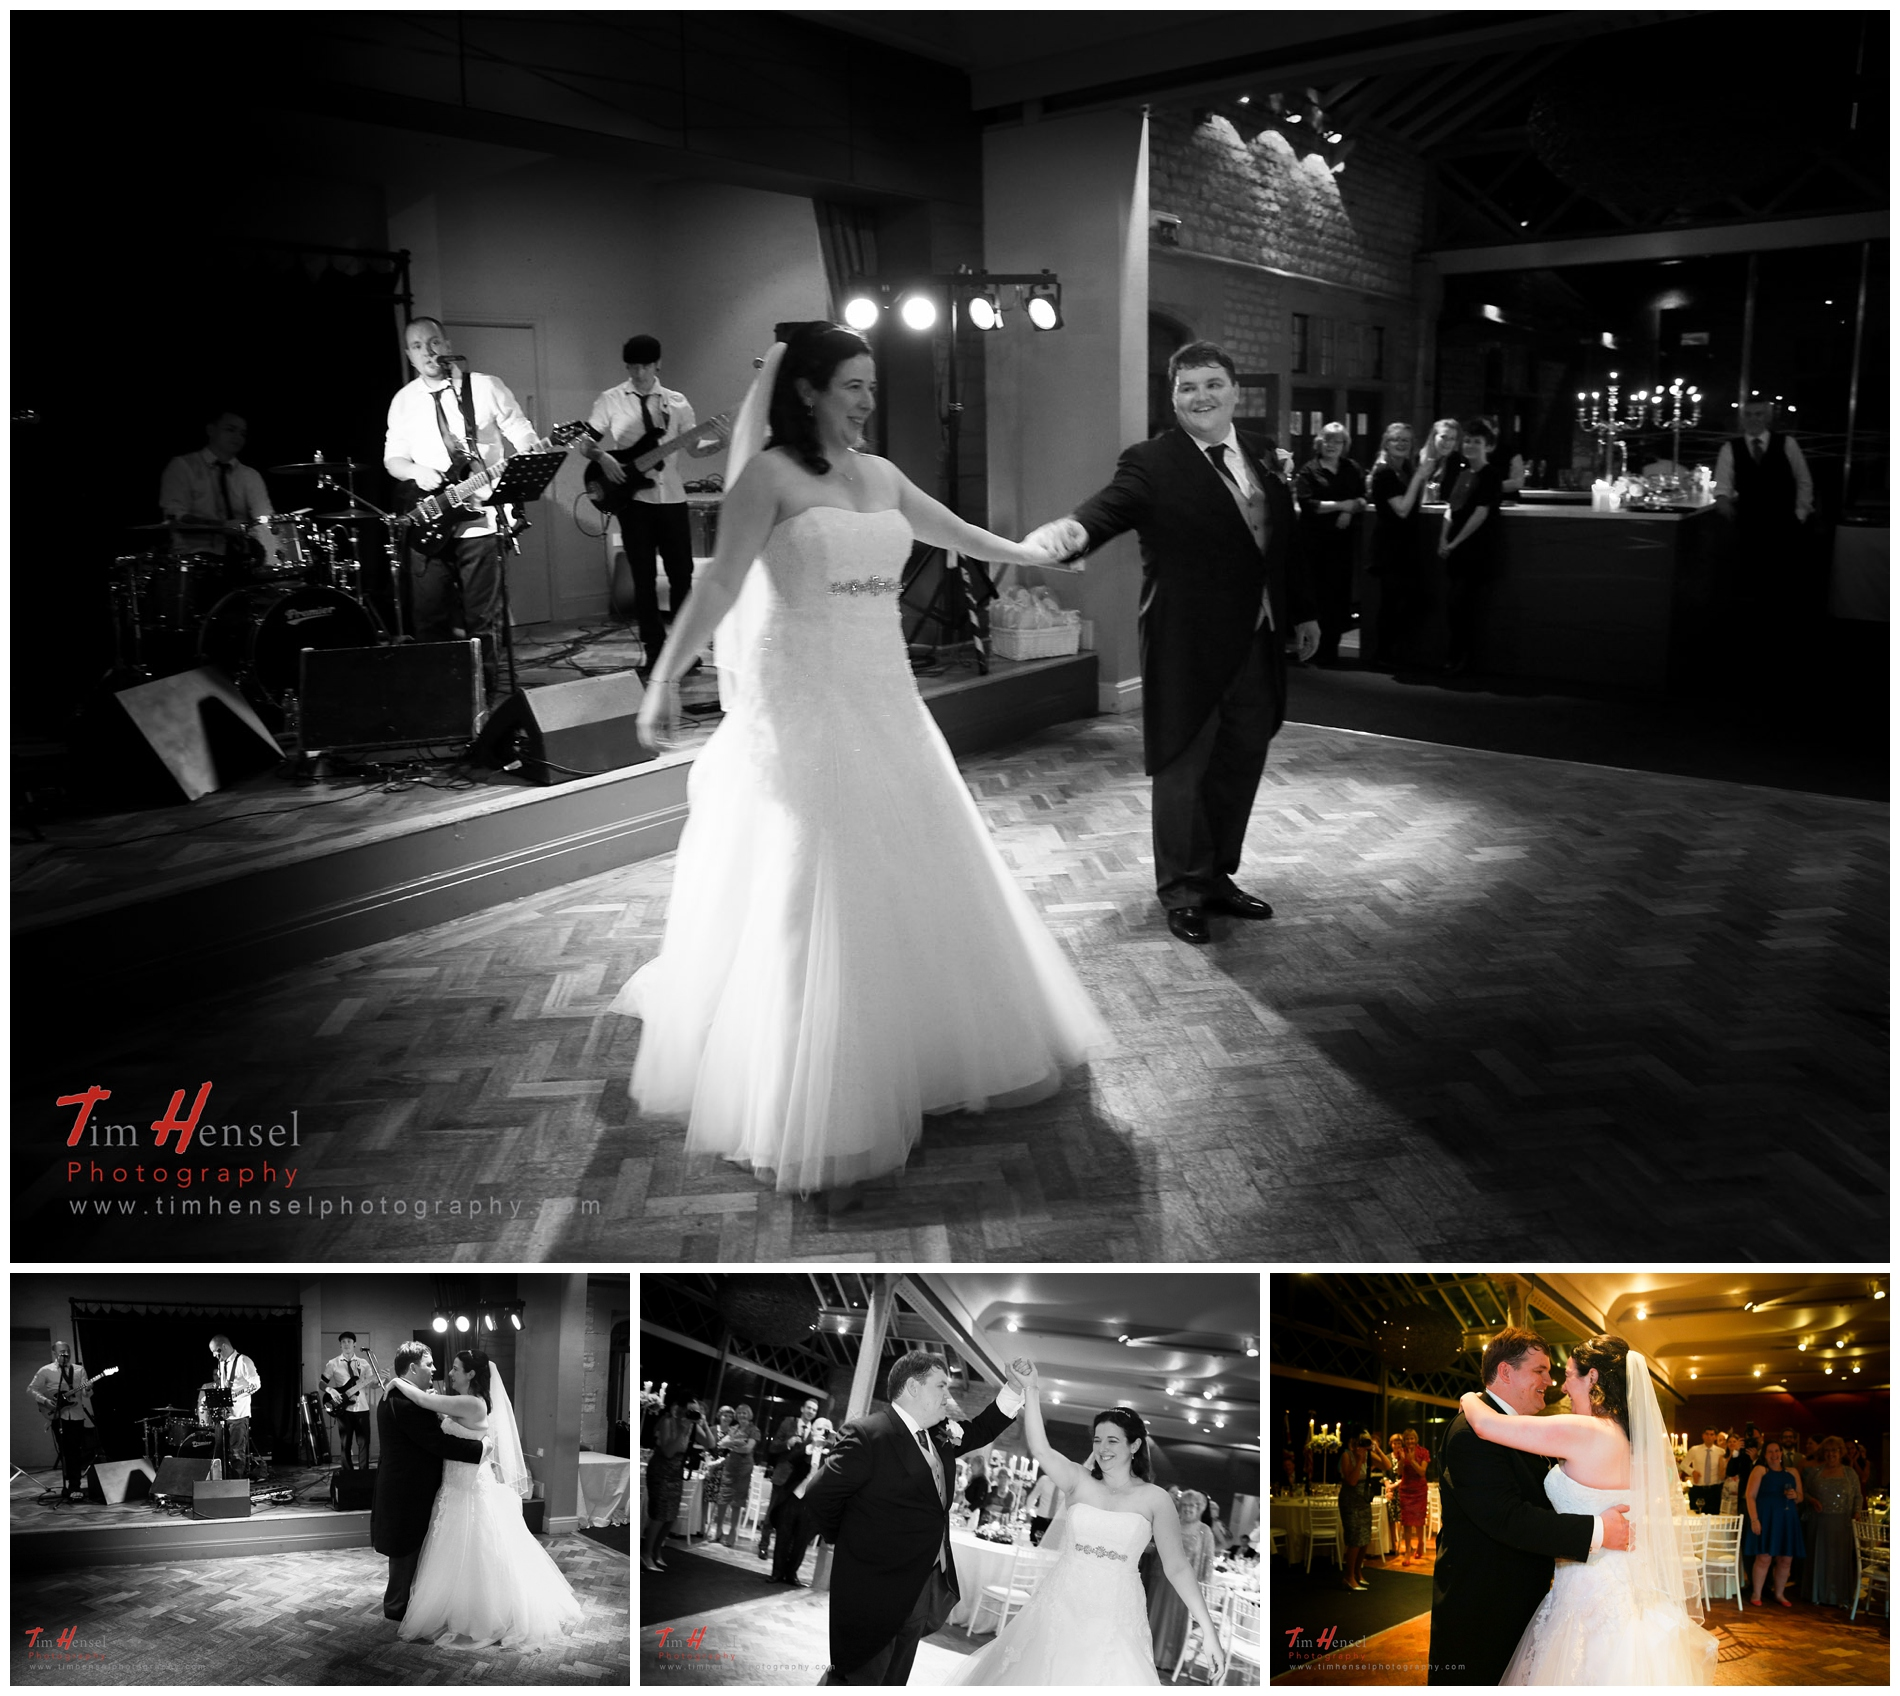 Natural, creative first dance wedding photography at thornbridge hall